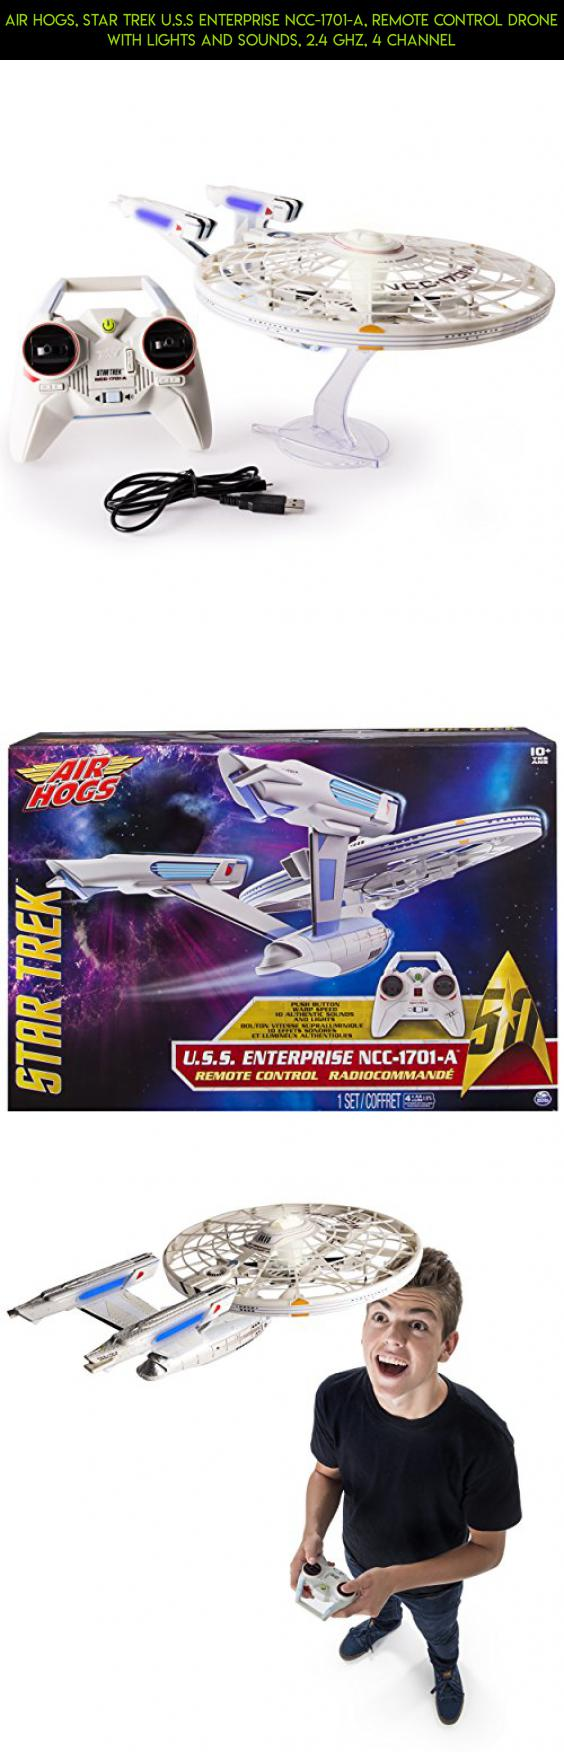 Air Hogs, Star Trek U.S.S Enterprise NCC-1701-A, Remote Control Drone with Lights and Sounds, 2.4 GHZ, 4 Channel #shopping #camera #plans #products #parts #enterprise #gadgets #fpv #tech #technology #ncc-1701-a #drone #hogs #kit #racing #air